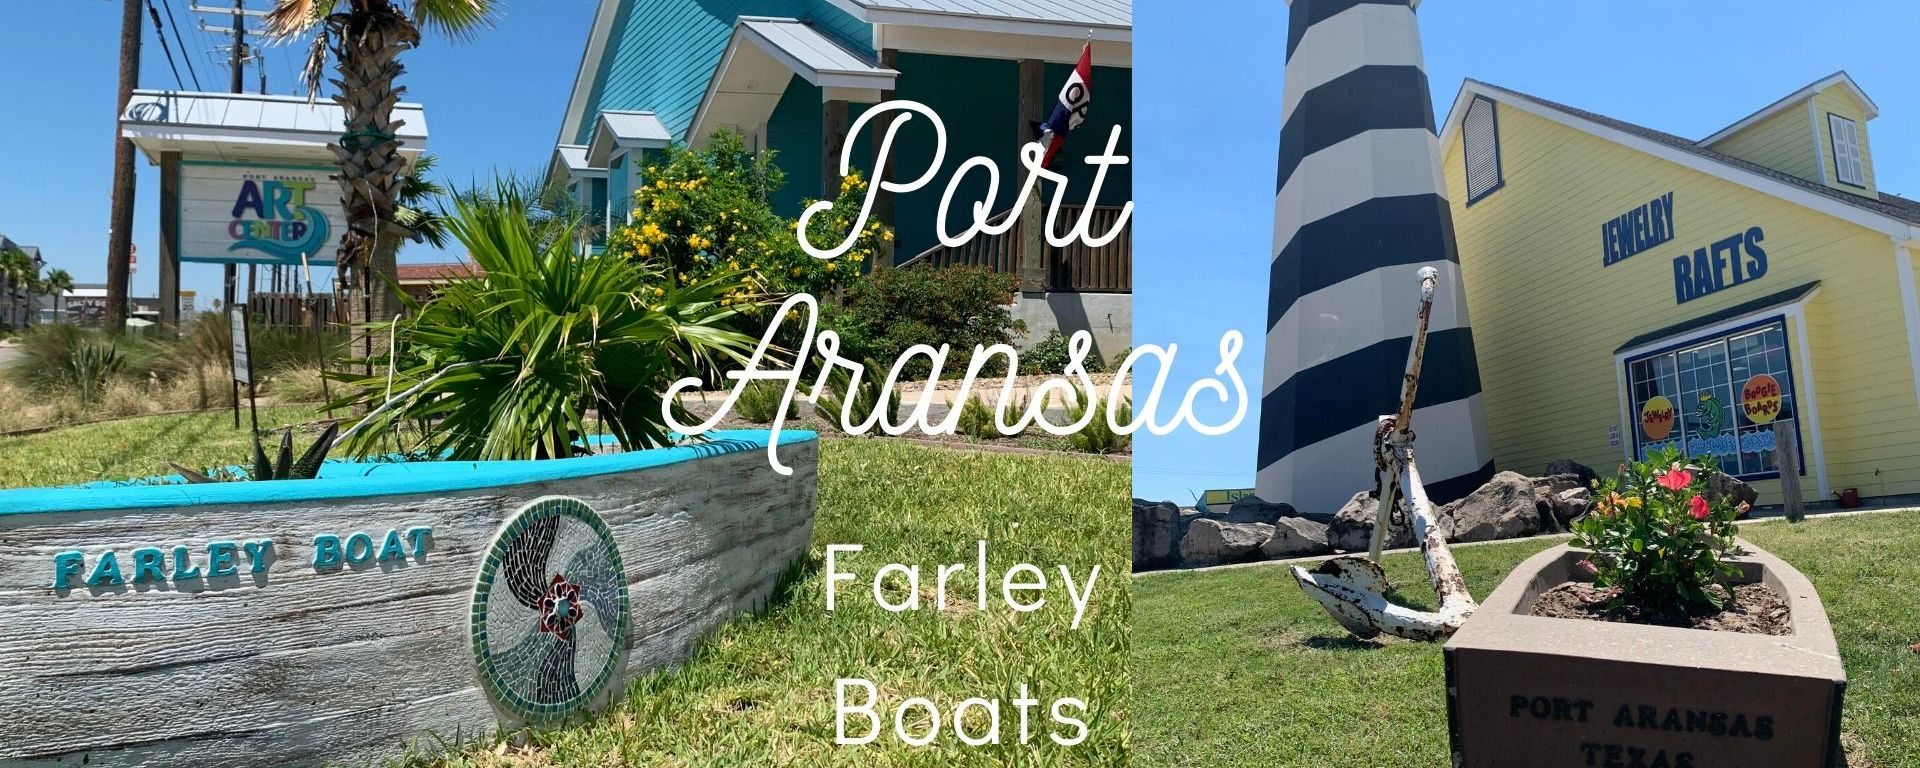 """Two photos are presented side by side of two Farley boats in front of two Port Aransas businesses. Above the photos is a large text stating: """"Port Aransas"""" and below in smaller font """"Farley Boats""""."""